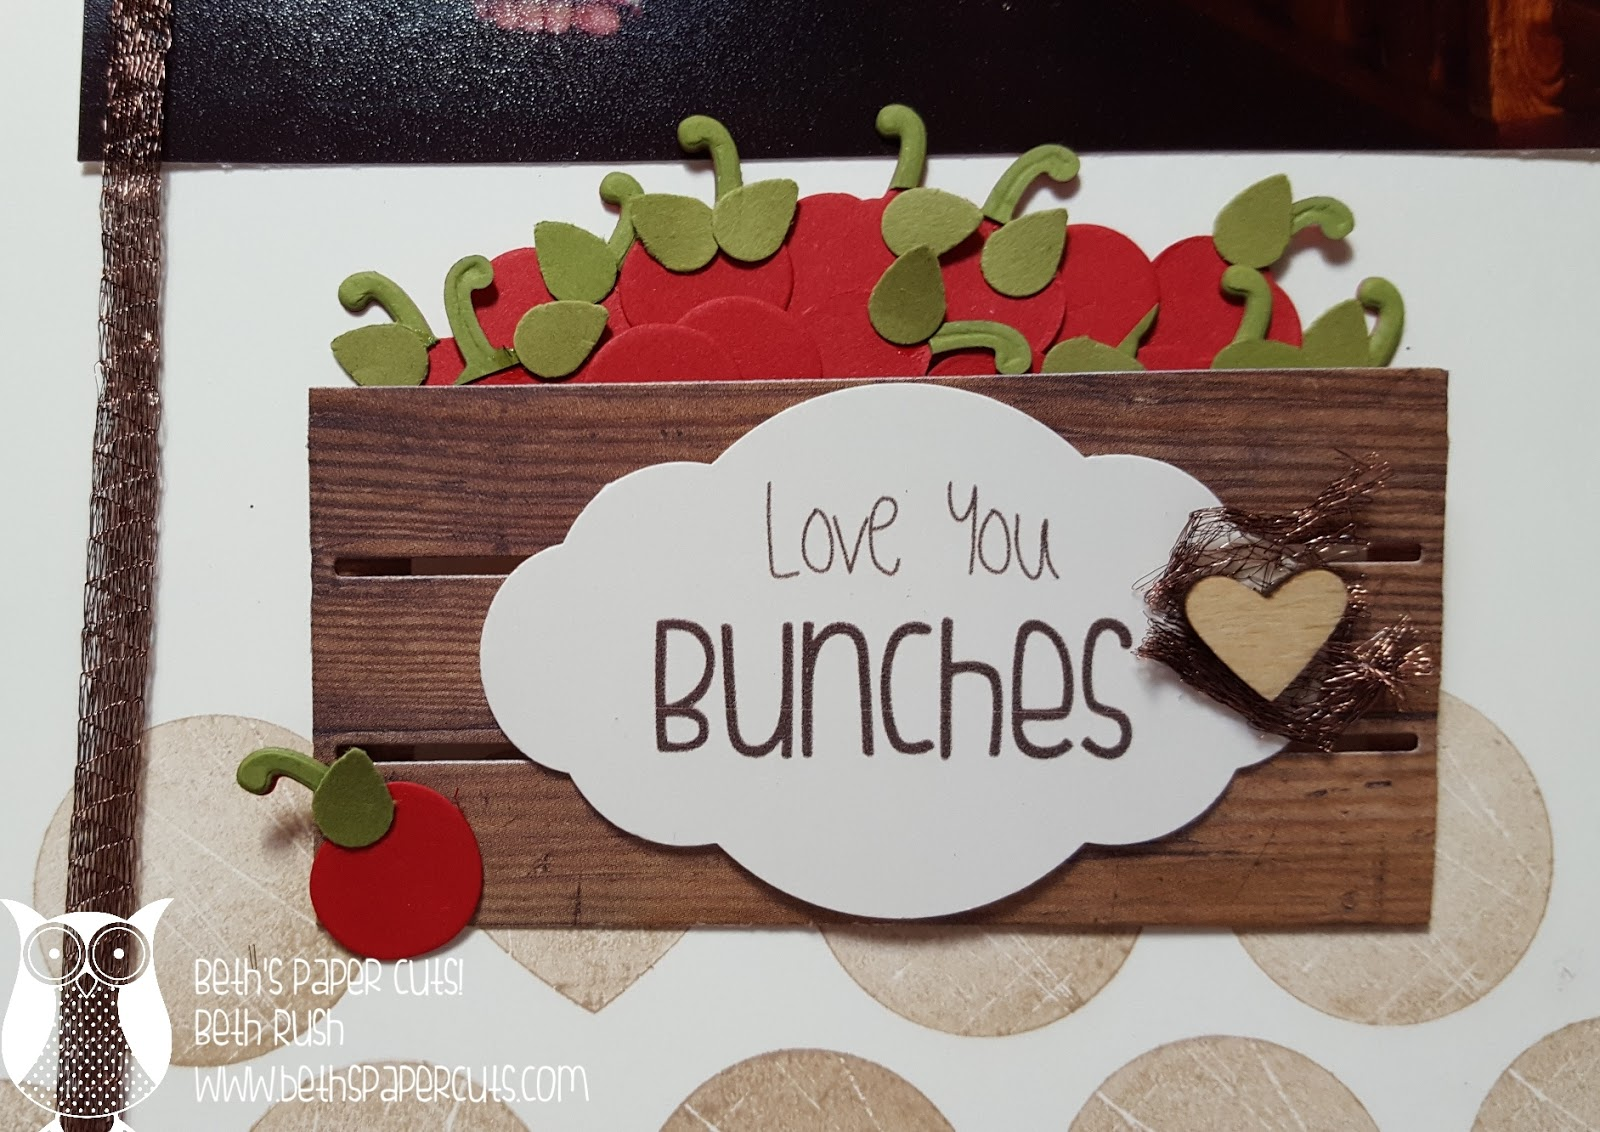 How to put scrapbook paper on wood - I Just Love These New Items From Stampin Up I Remembered That I Had Some Photos Of My Son With A Wooden Crate And So I Found Them And Put Together This